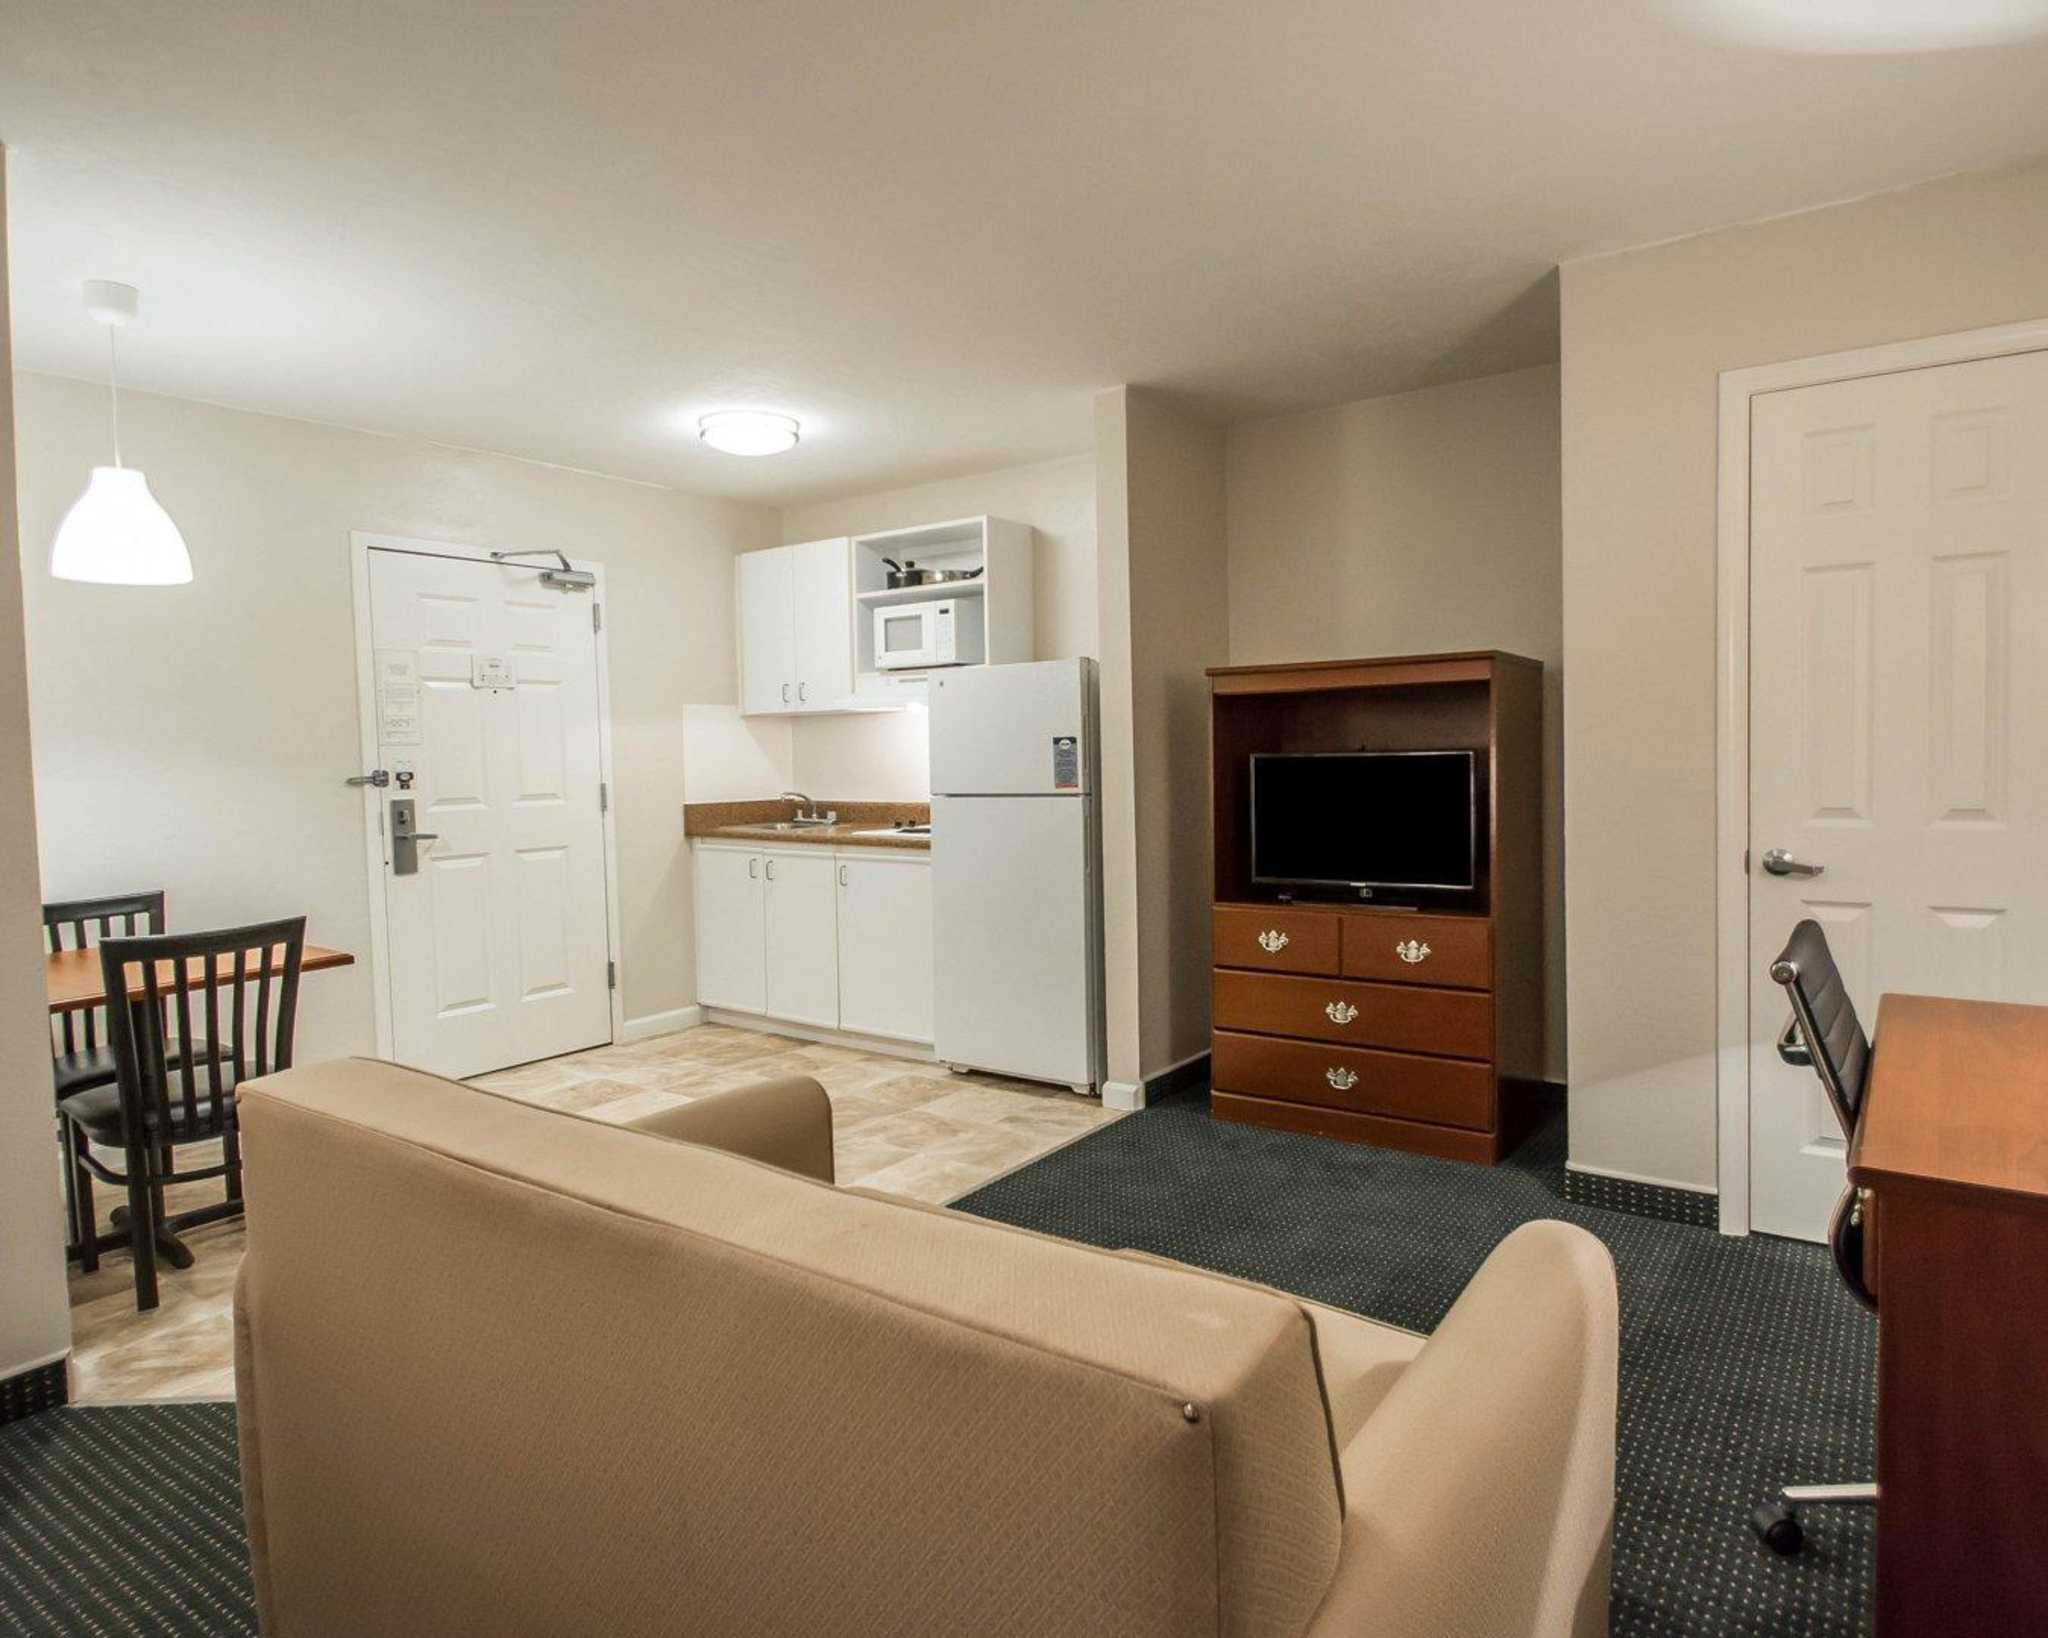 Suburban Extended Stay Hotel image 26